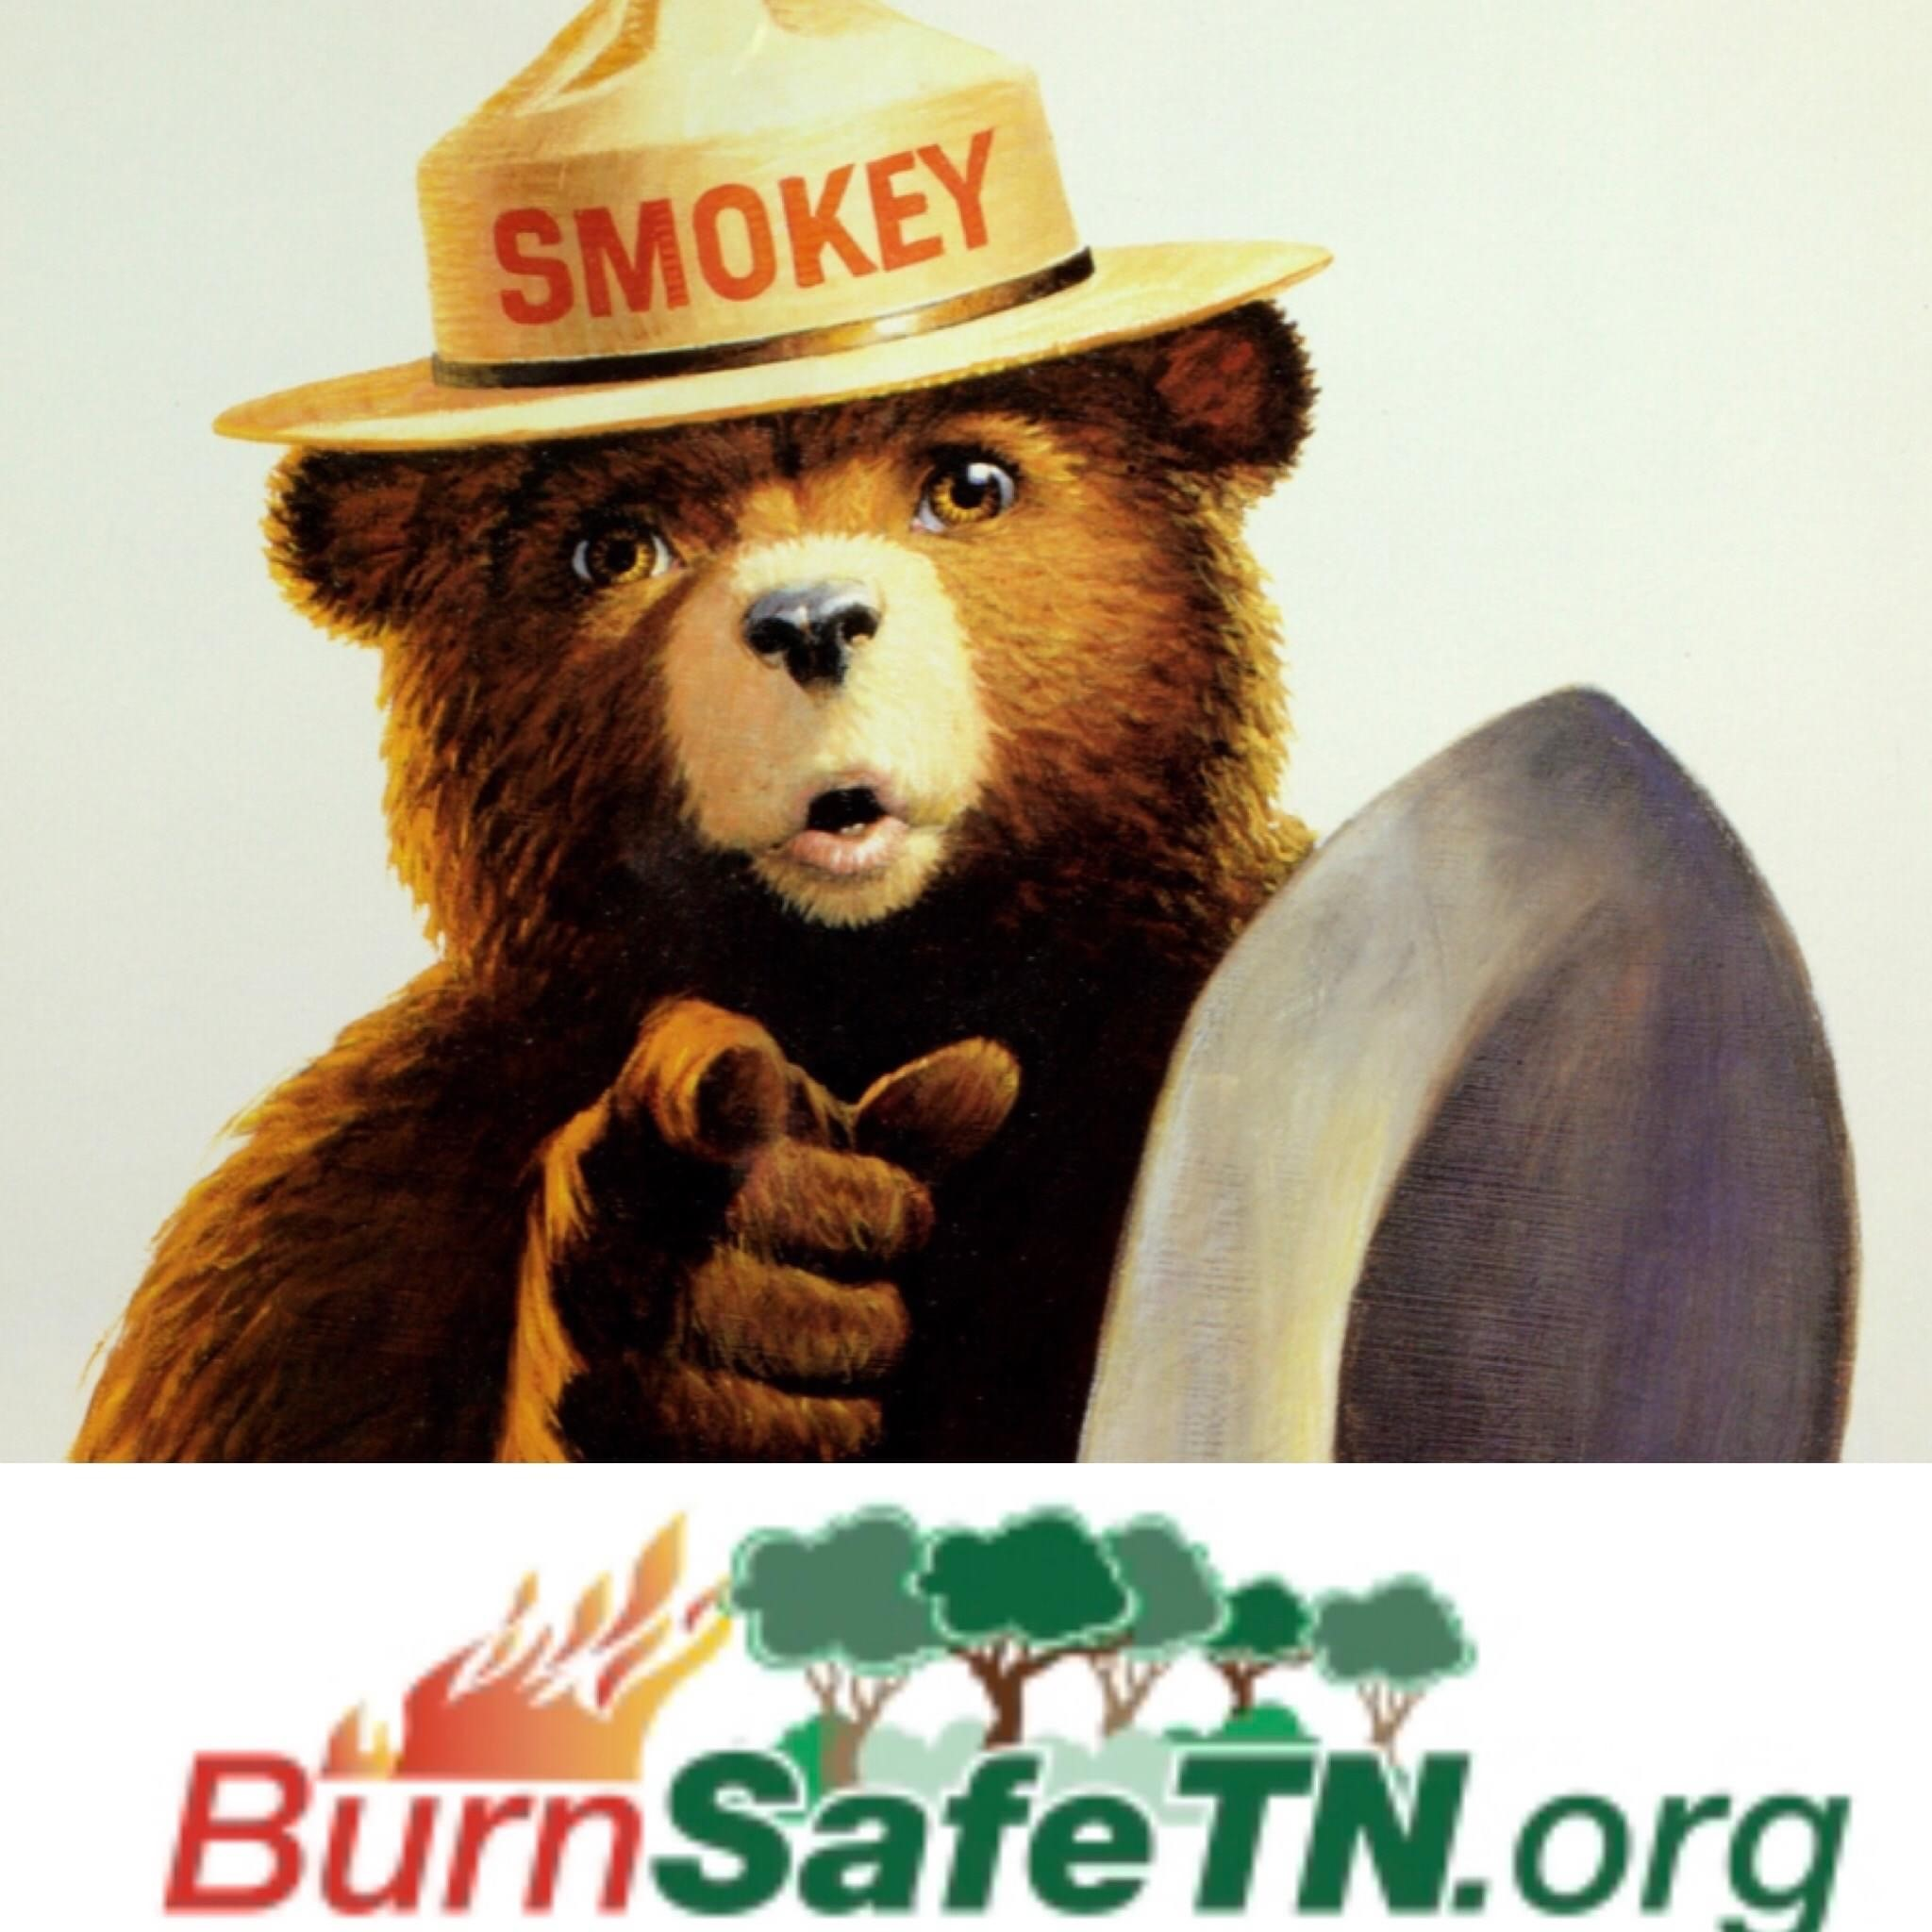 Smokey the Bear ad for burnsafetn.org on safe burning practices and burn permits